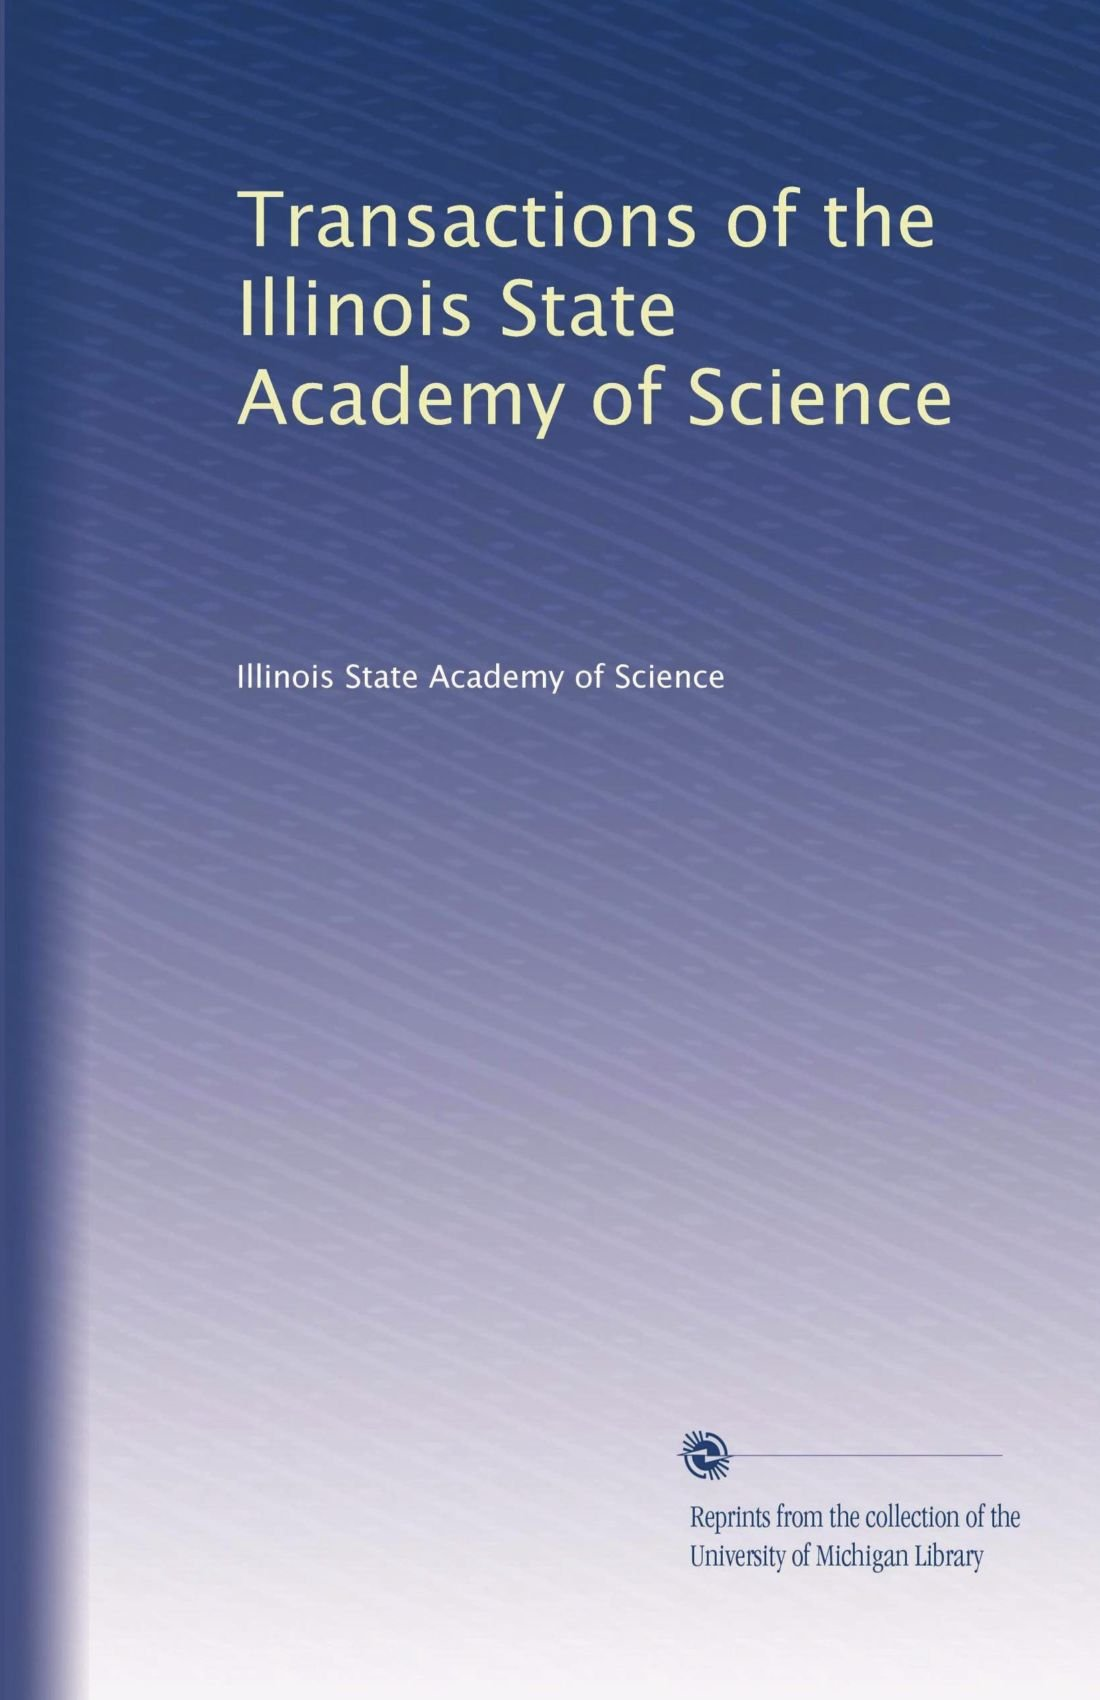 Download Transactions of the Illinois State Academy of Science (Volume 2) ebook